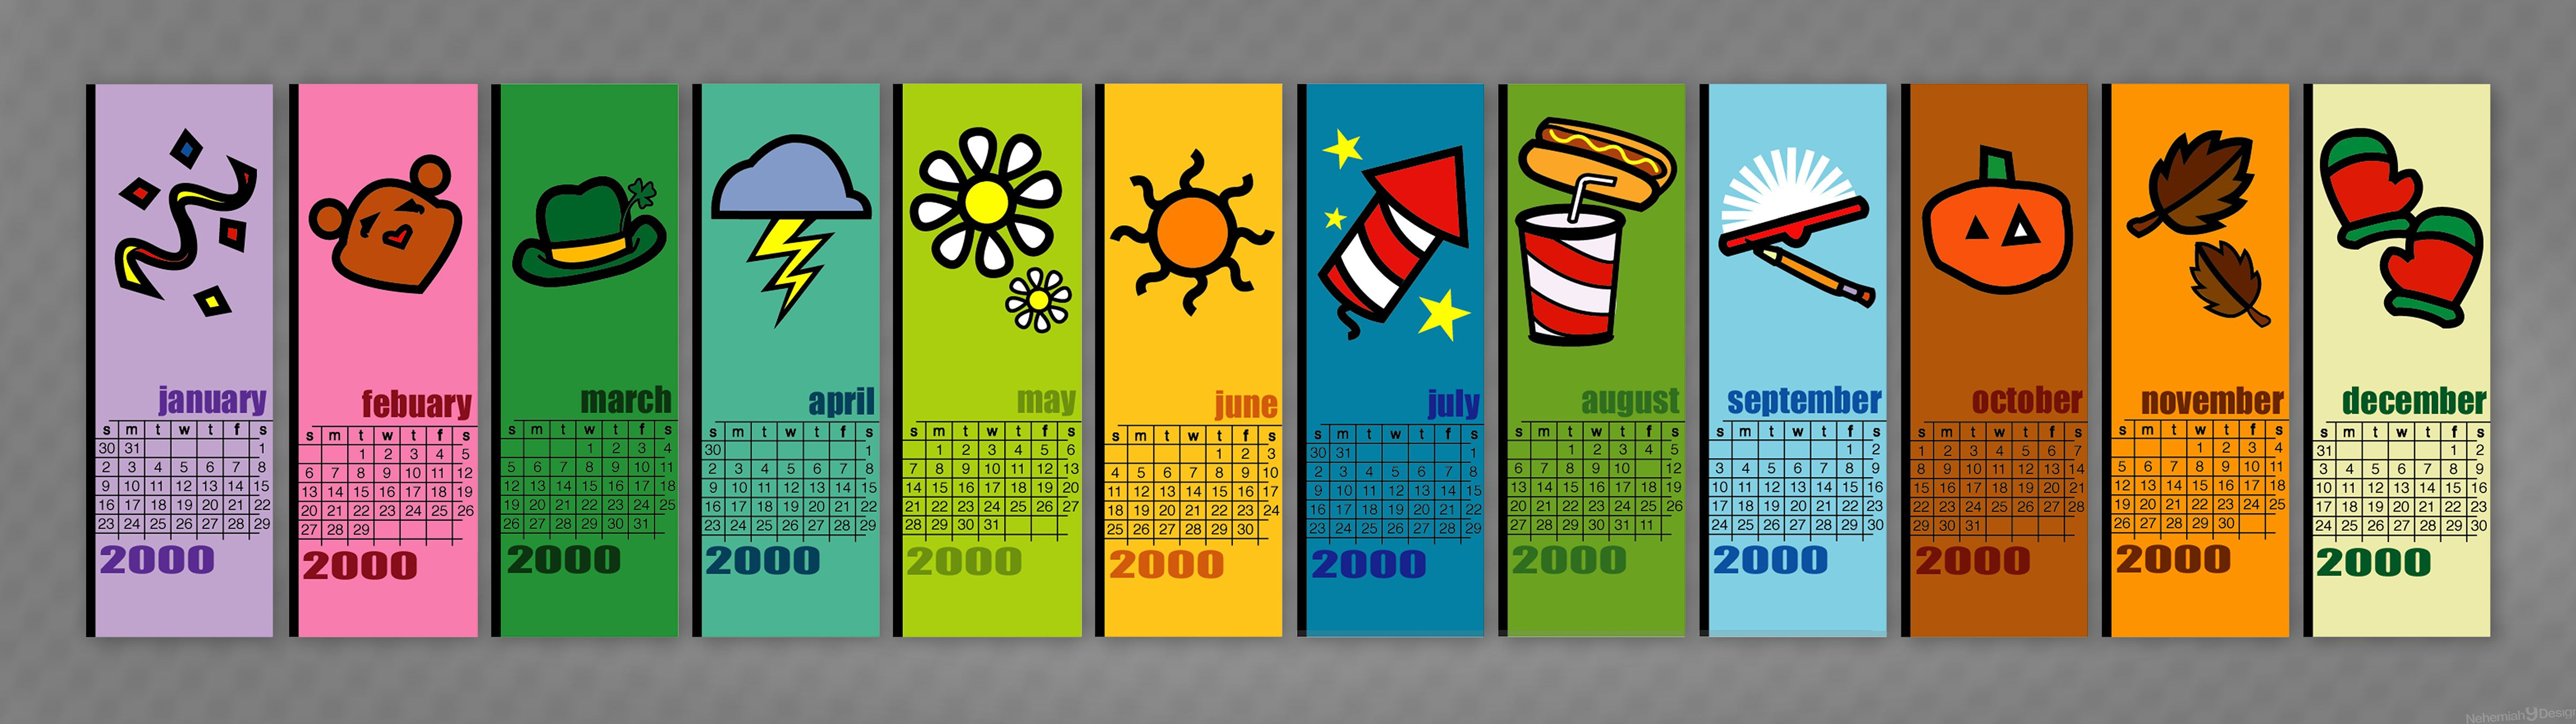 visual communications design class from back in the day  calendar bookmarks